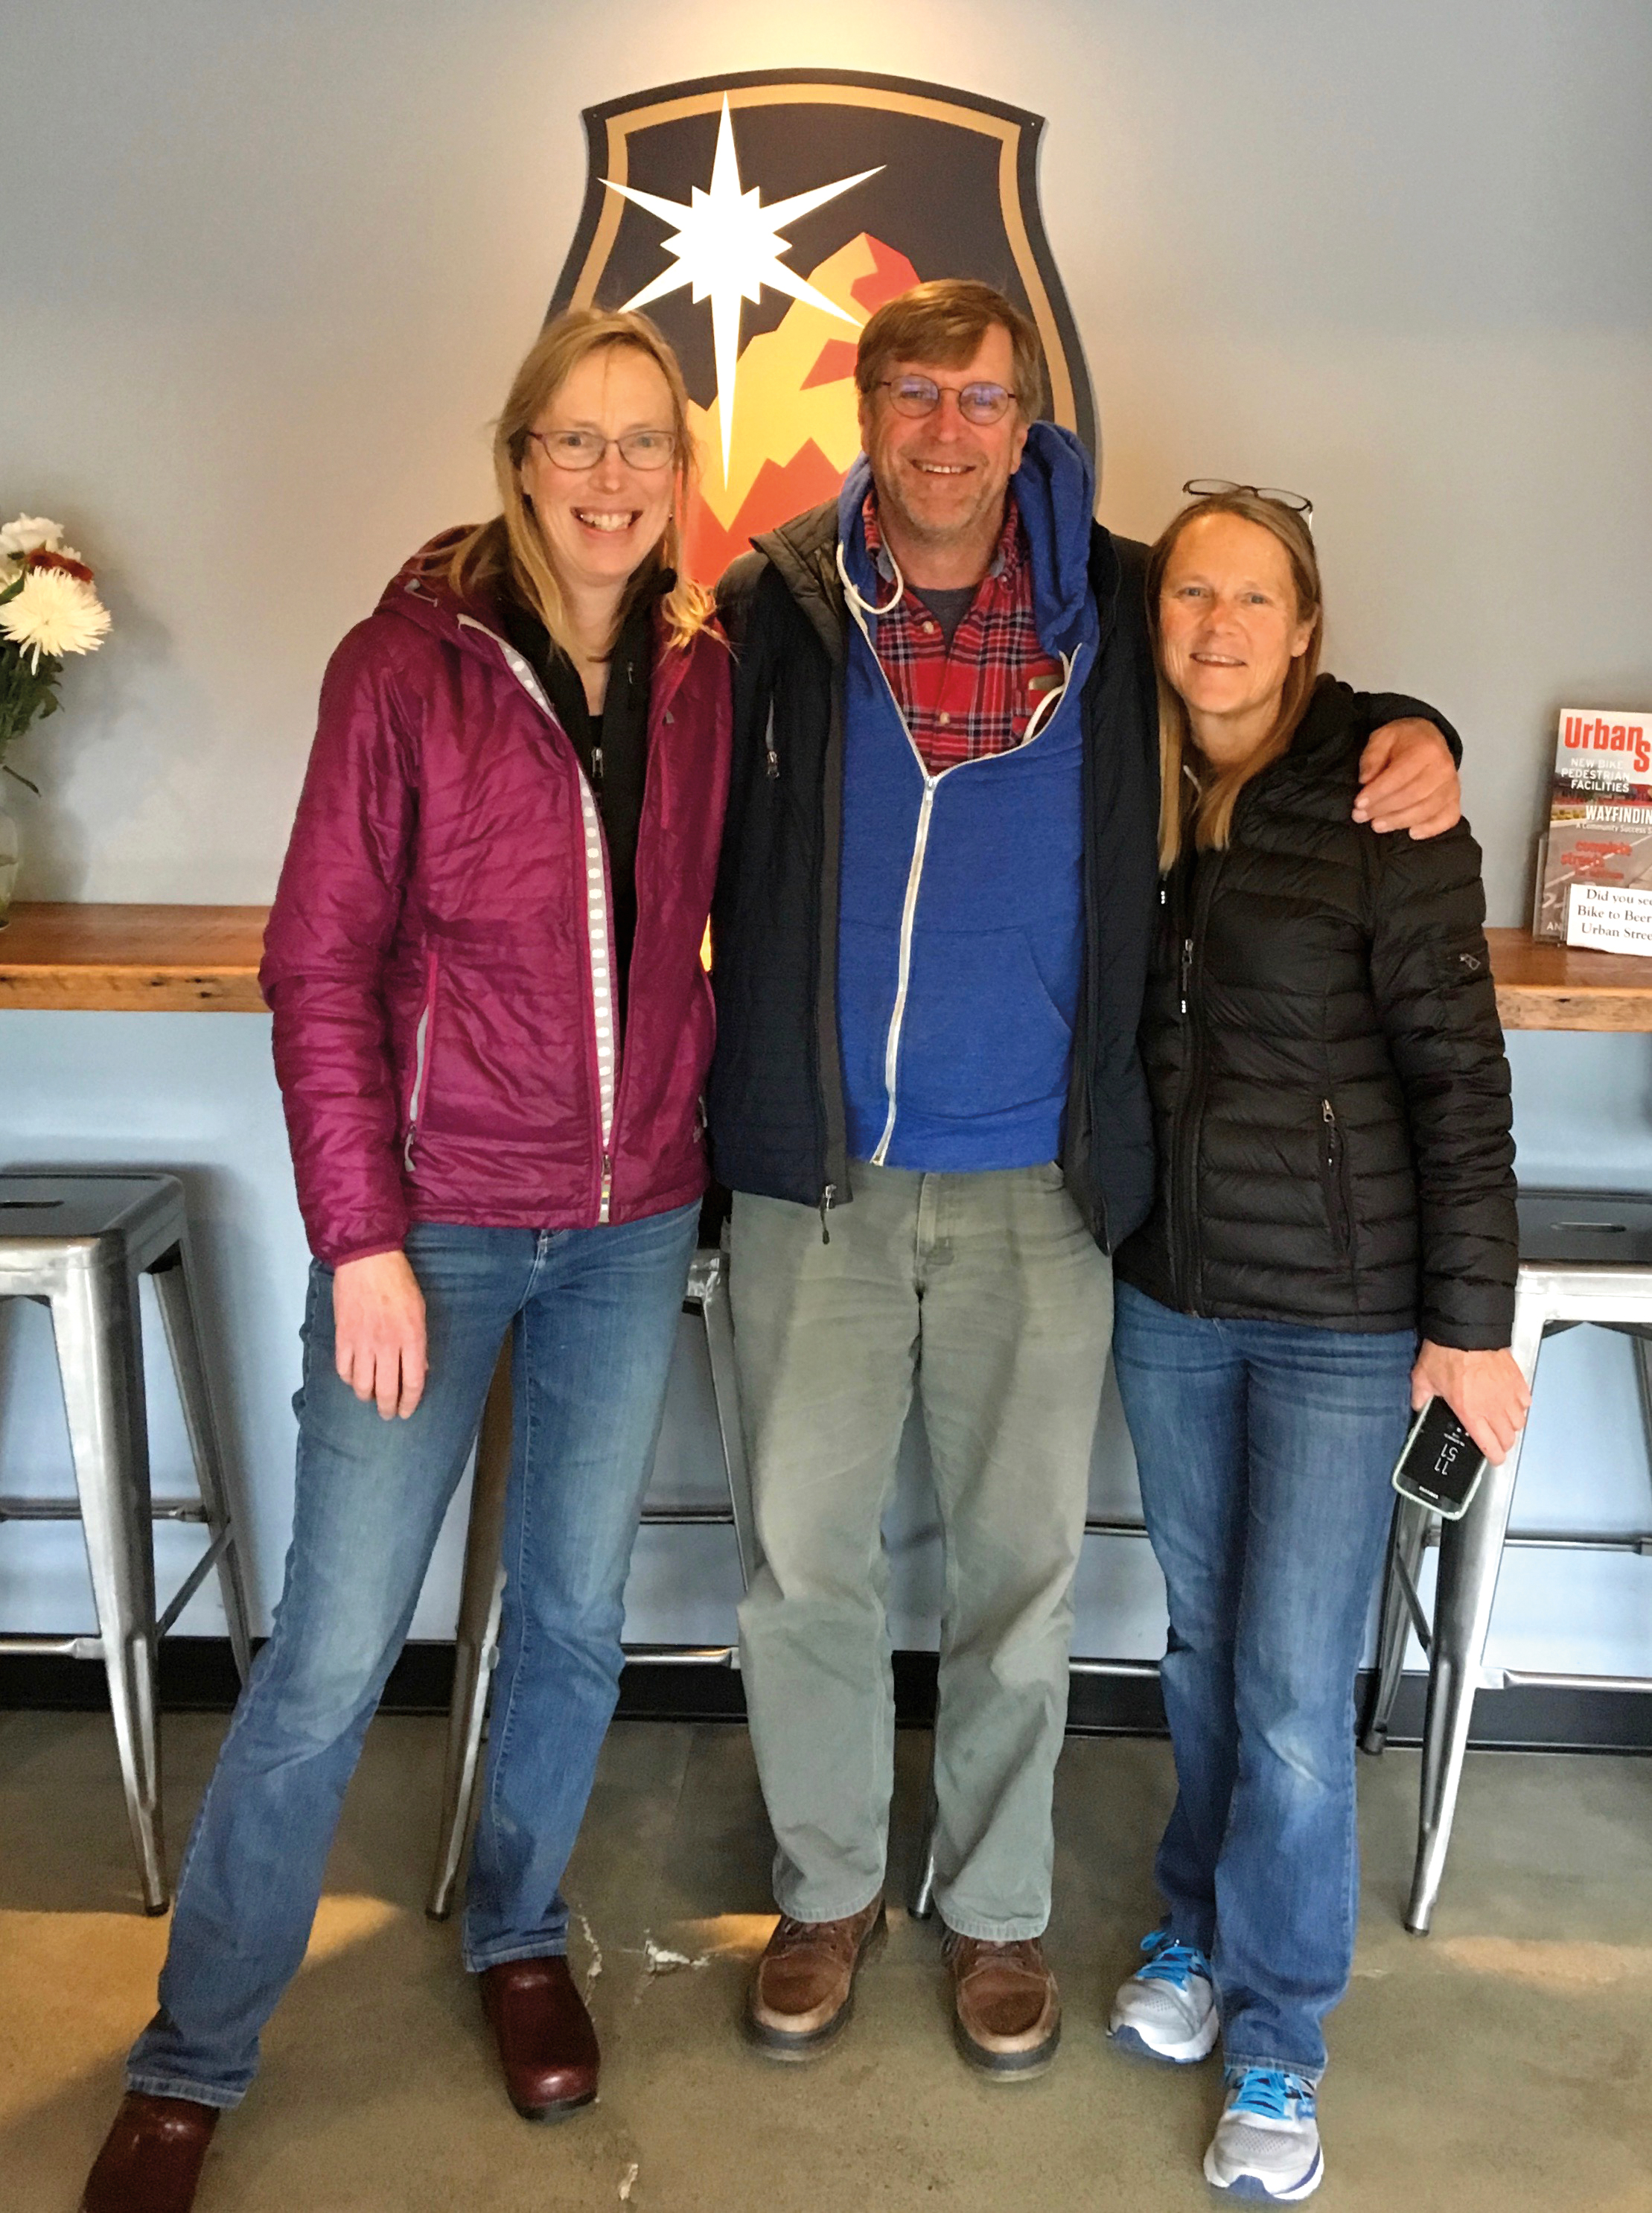 (L. to r.) Cappy Lewis '76 with husband Brett Lewis '77 and Cindy Drinkwater '77 at Cynosure Brewing in Anchorage, Alaska.